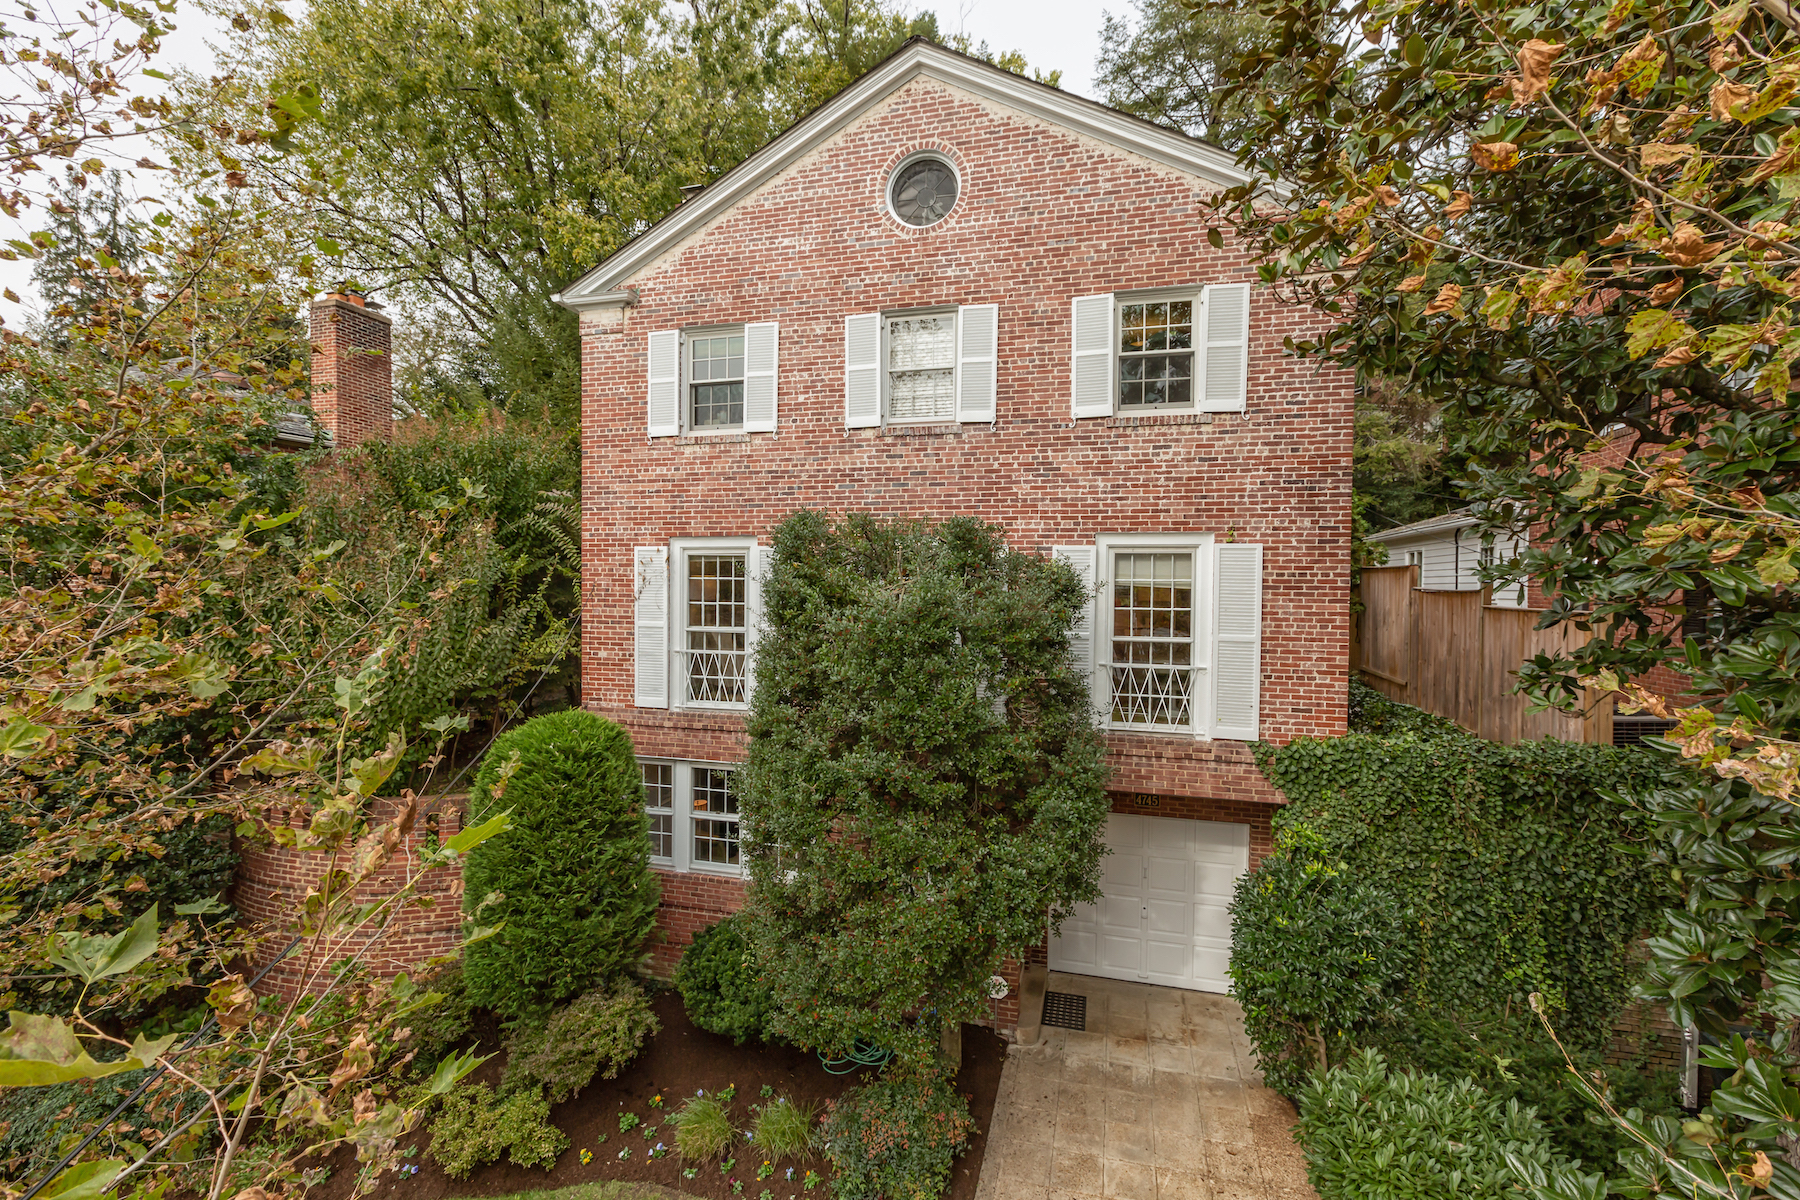 Single Family Home for Sale at 4745 Reservoir Rd NW 4745 Reservoir Rd NW Washington, District Of Columbia 20007 United States